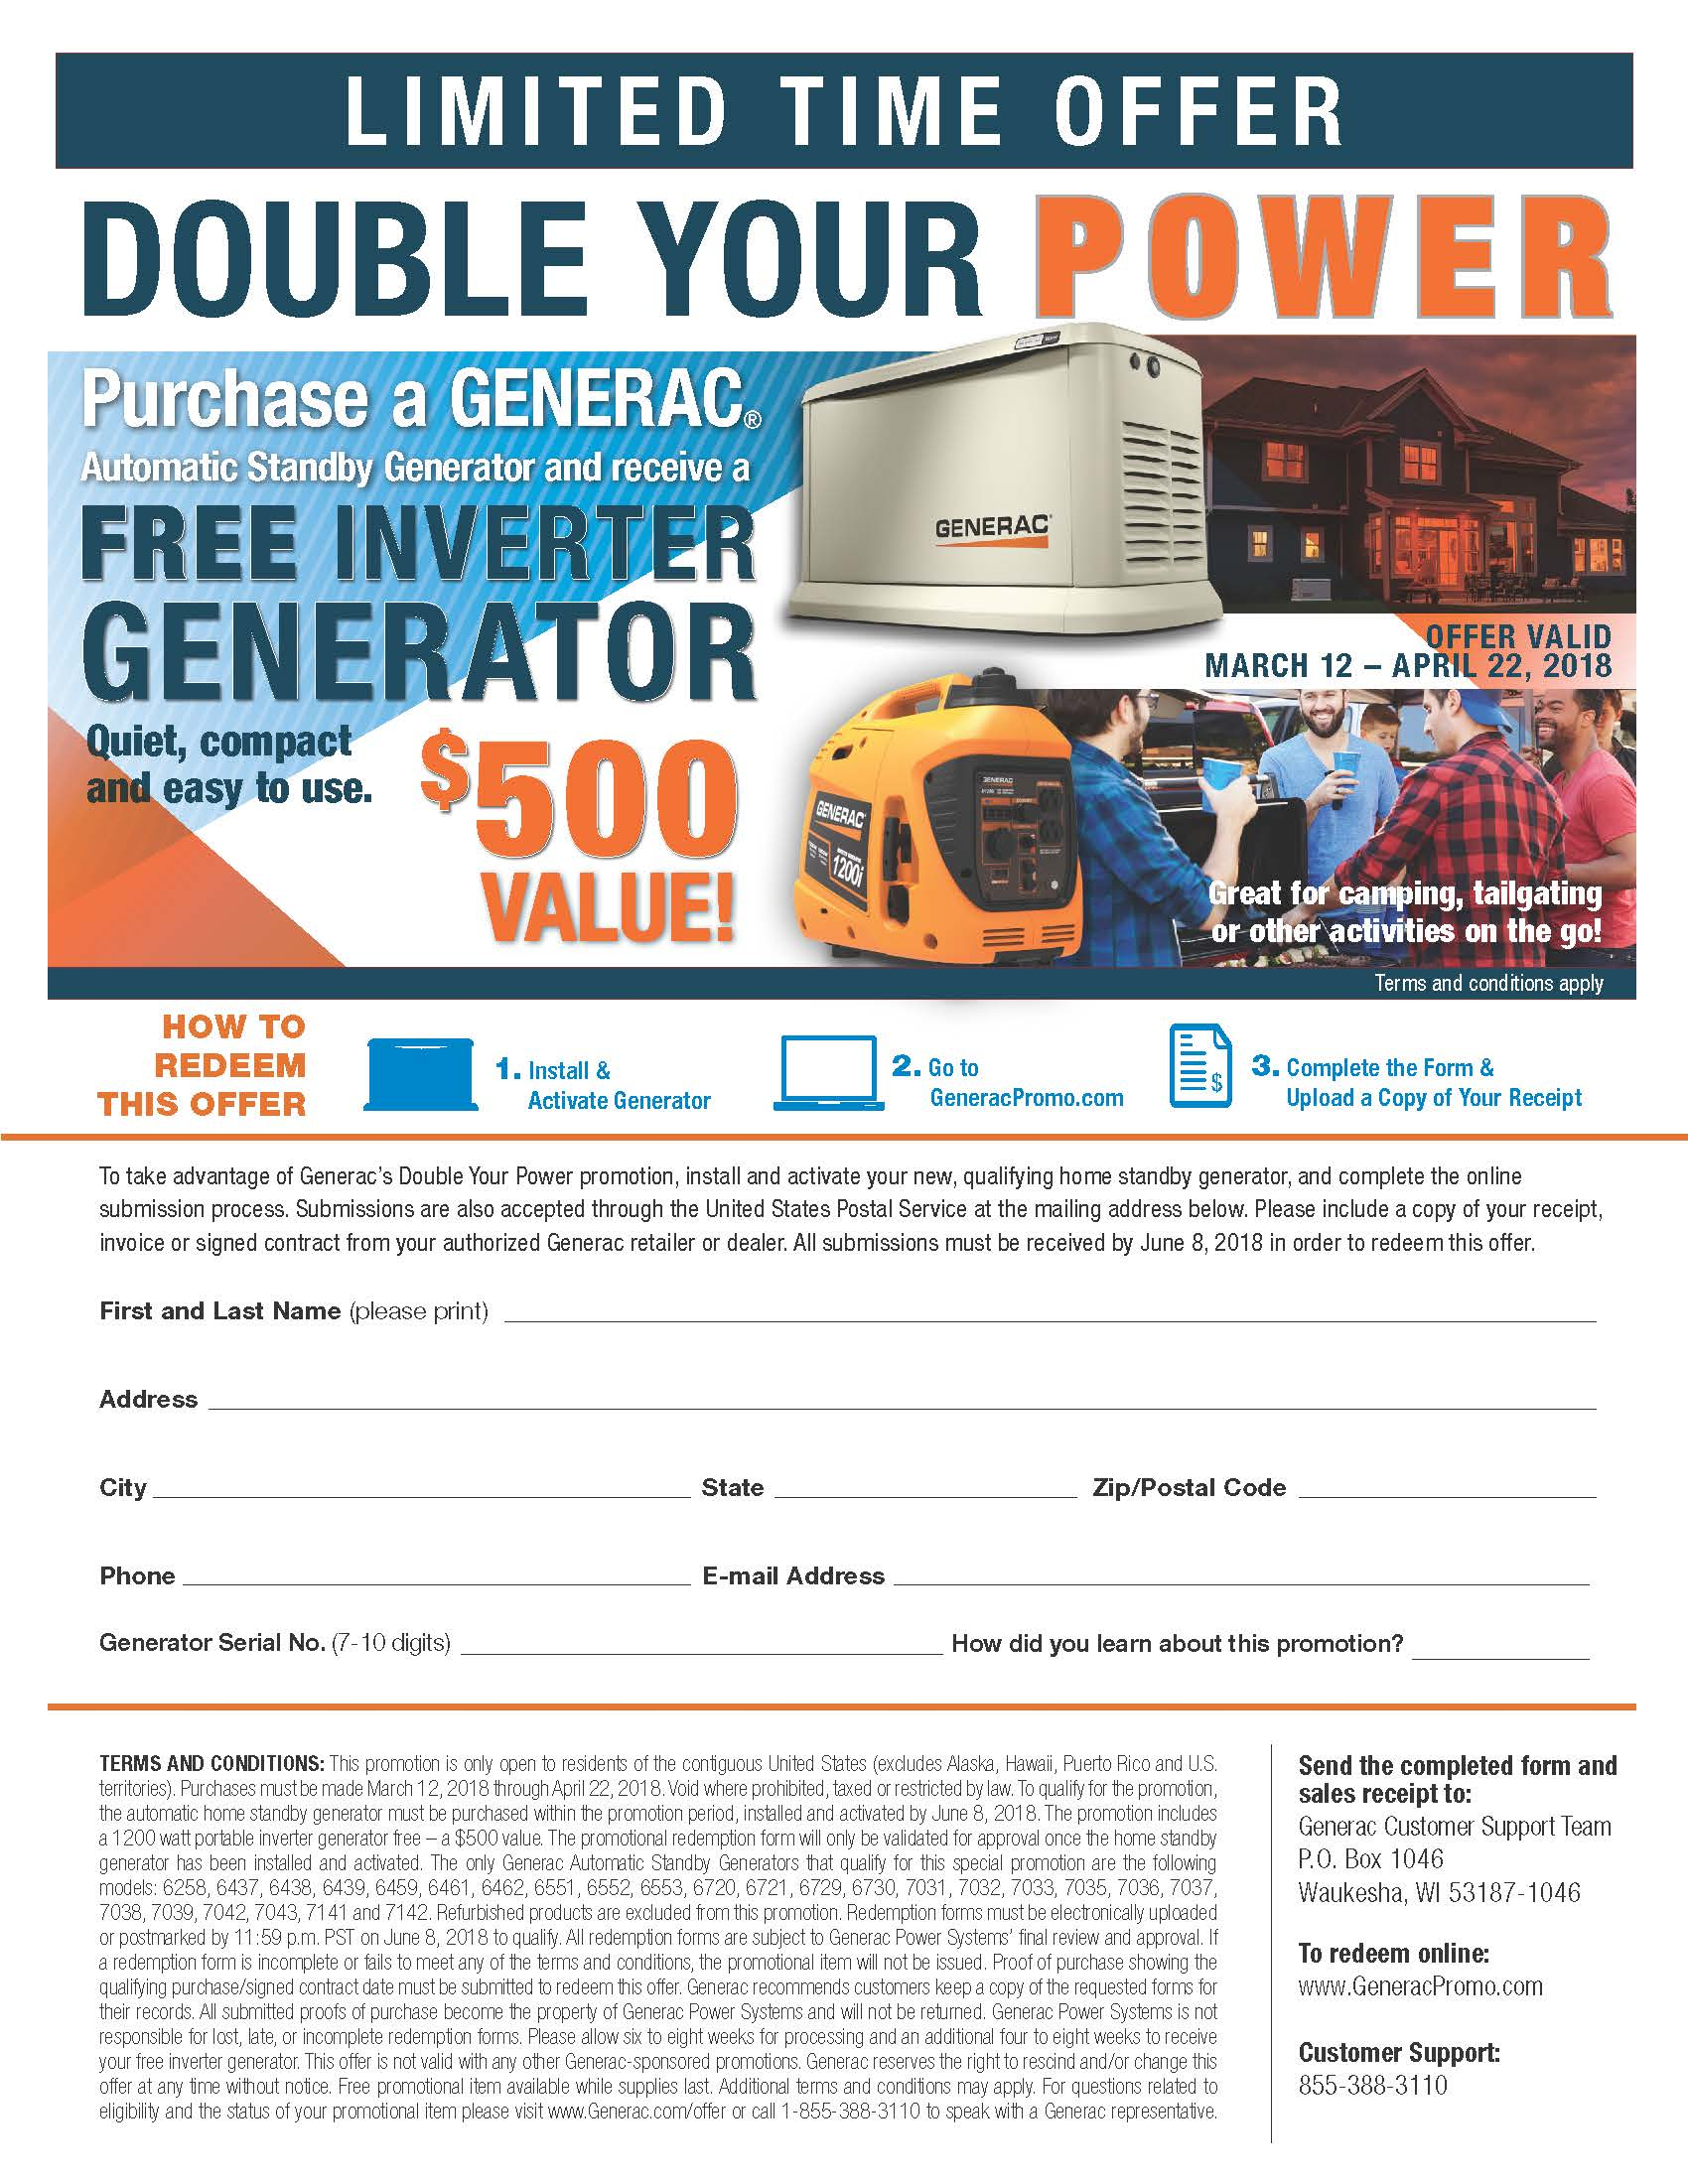 Generac – DOUBLE YOUR POWER